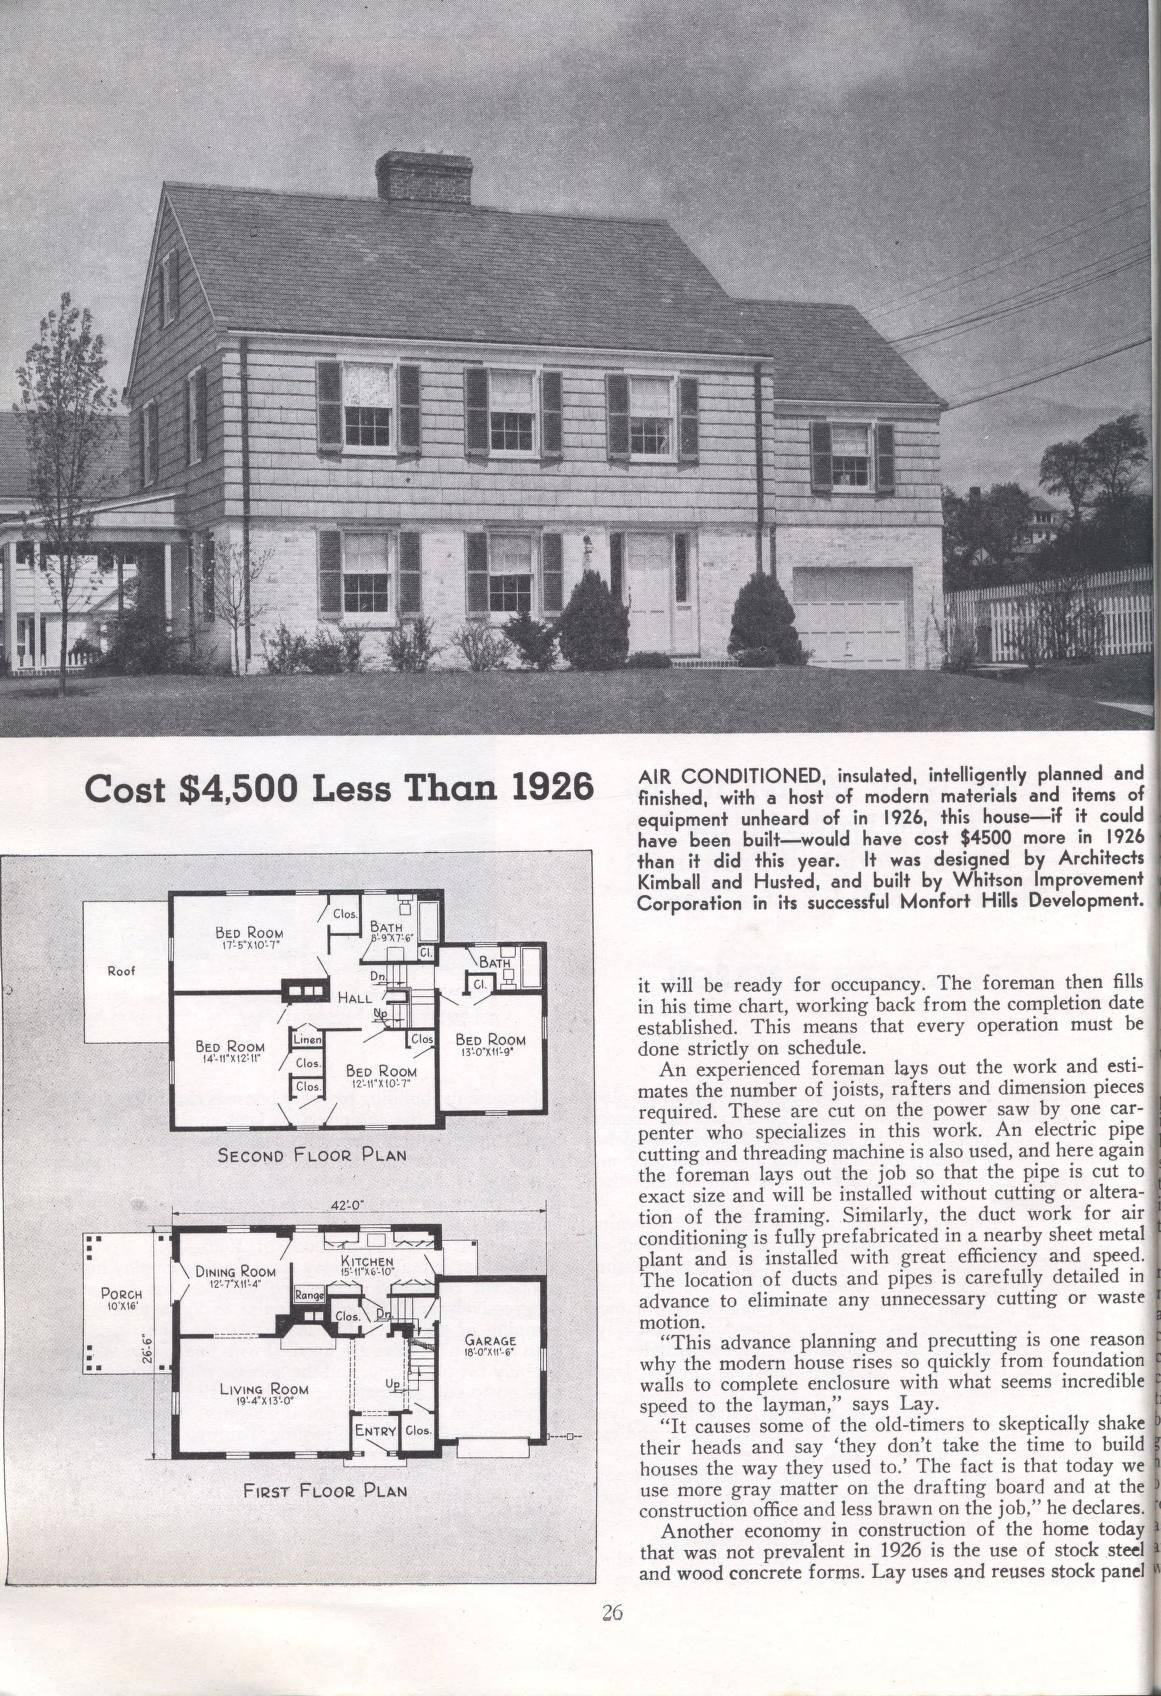 Big Value Homes By American Builder Publication Date 1938 P26 Sims House House Plans Historic Buildings